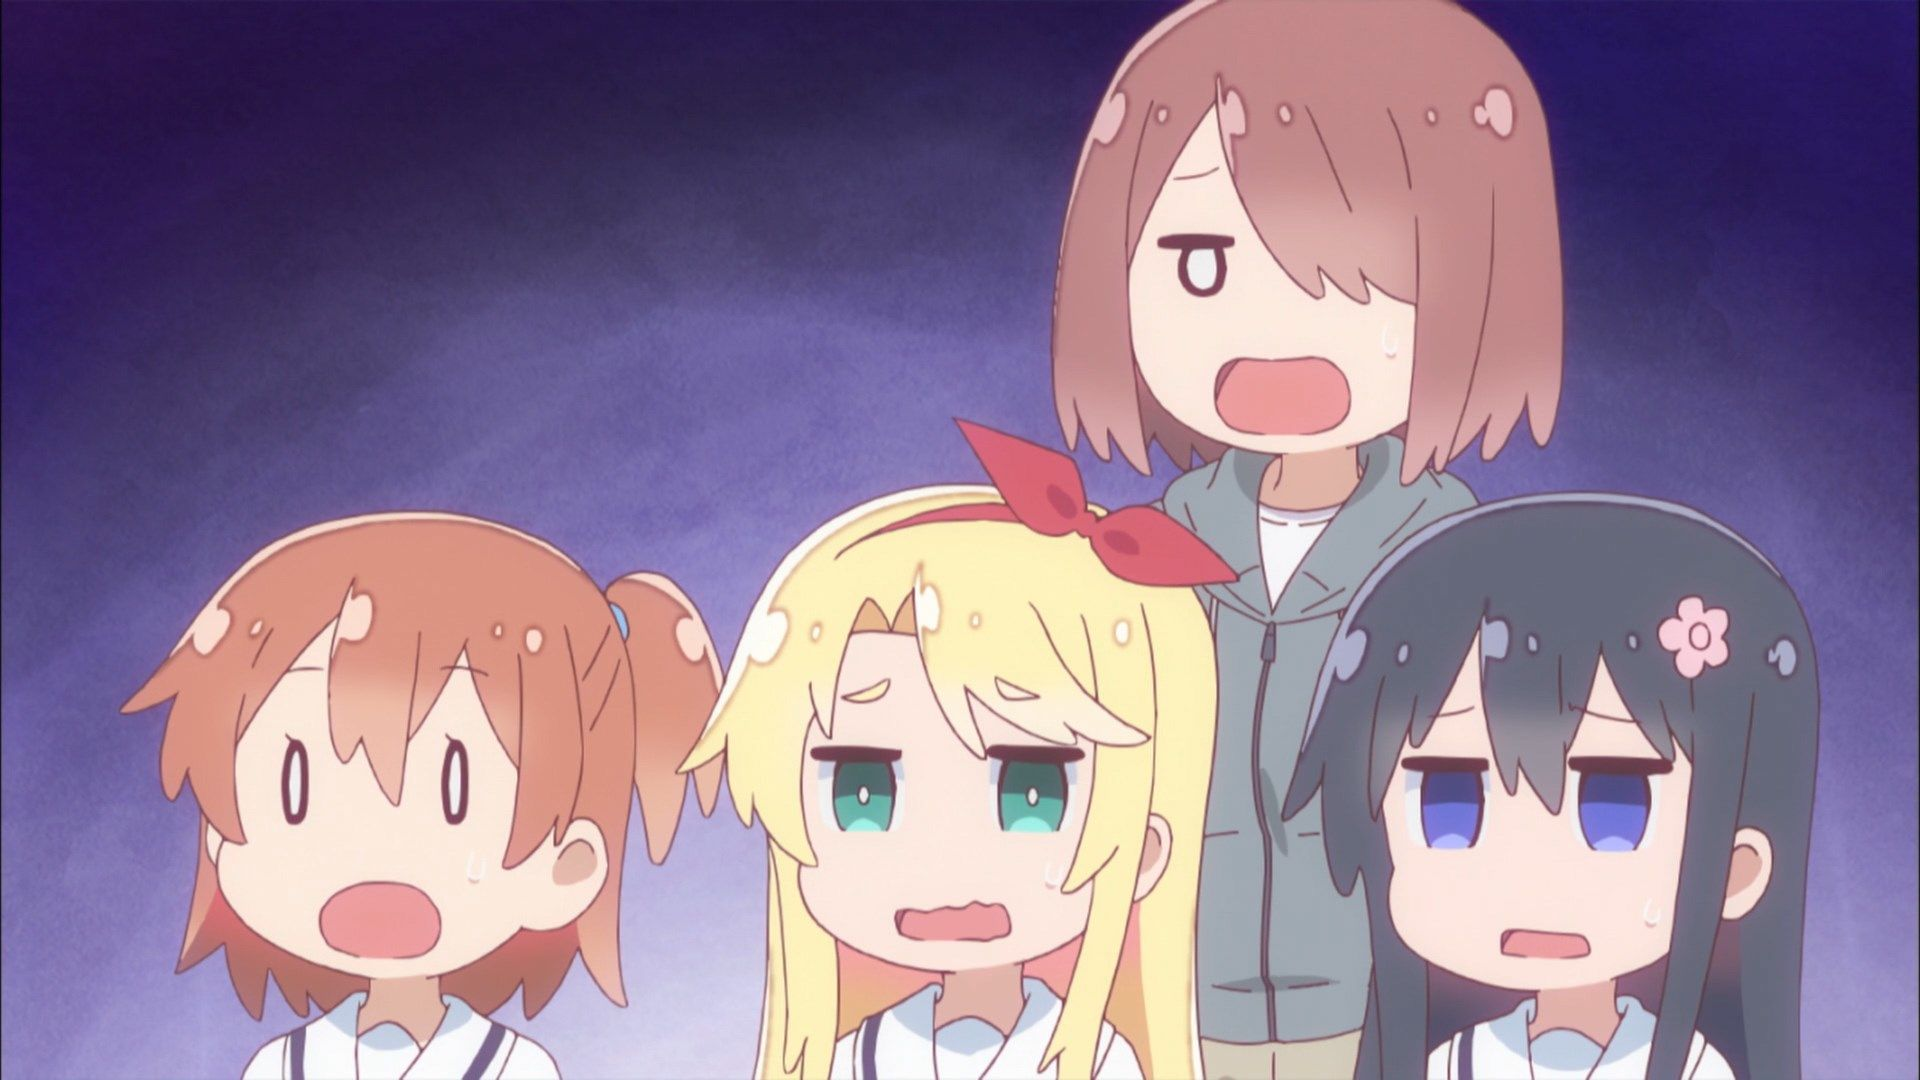 Pin By Kyo On Wataten An Angel Land On Me Anime Anime Expressions Anime Funny